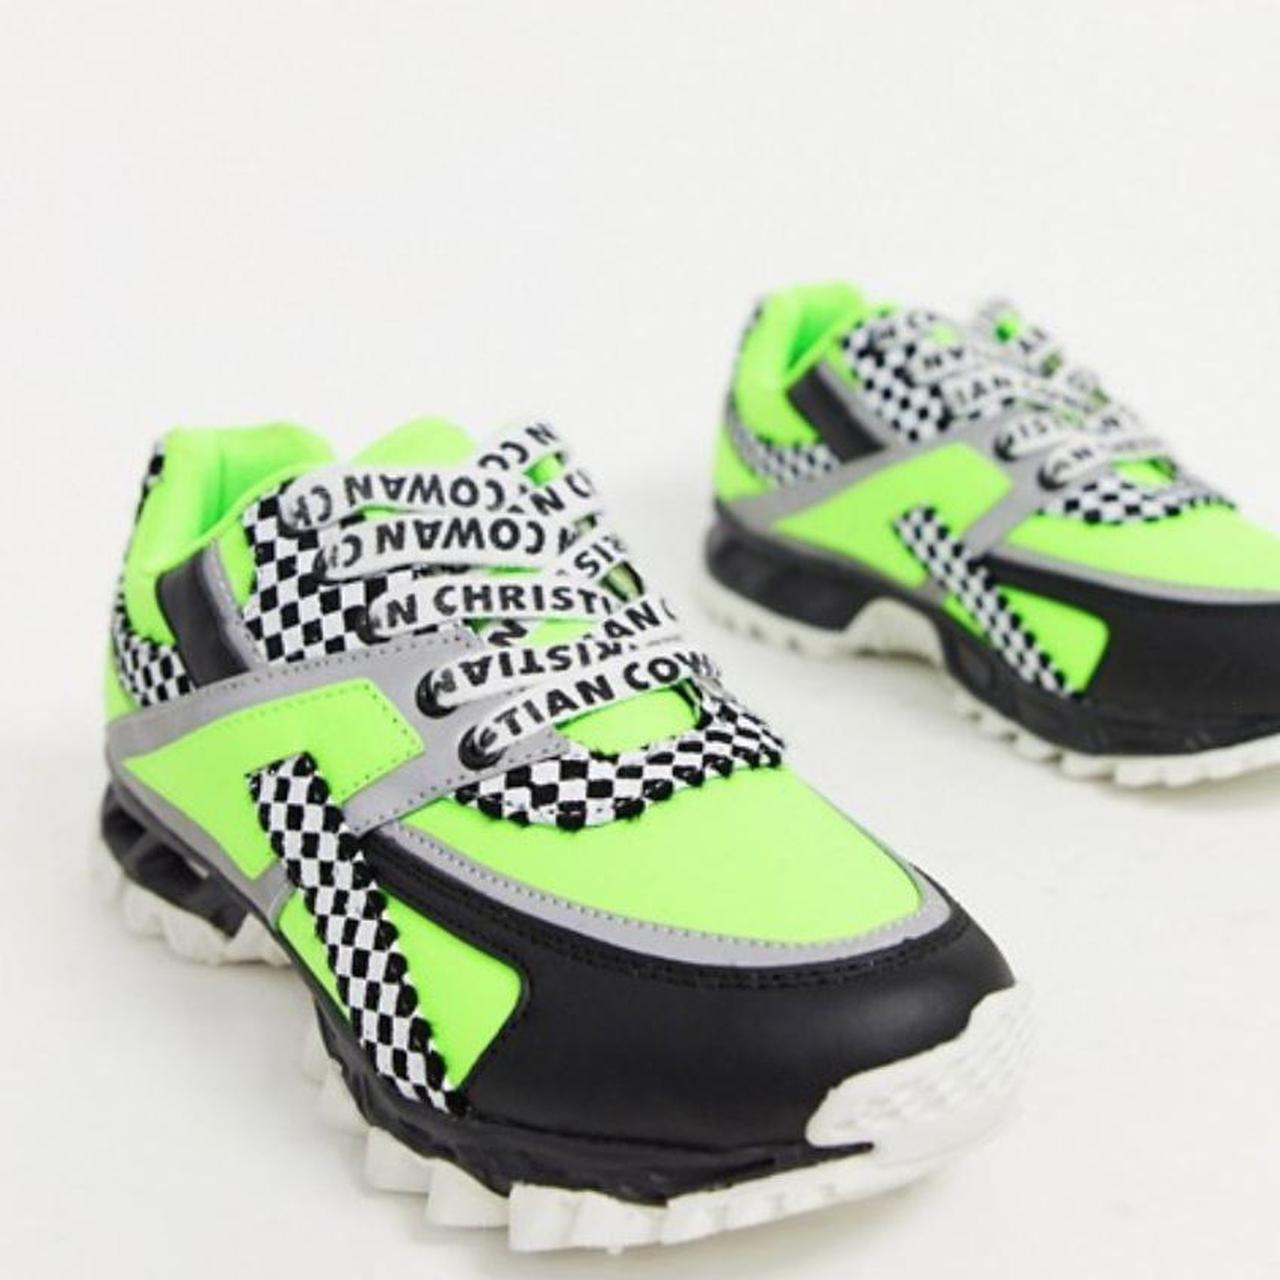 Product Image 1 - Christian Cowan Sneakers NWT BRAND NEW